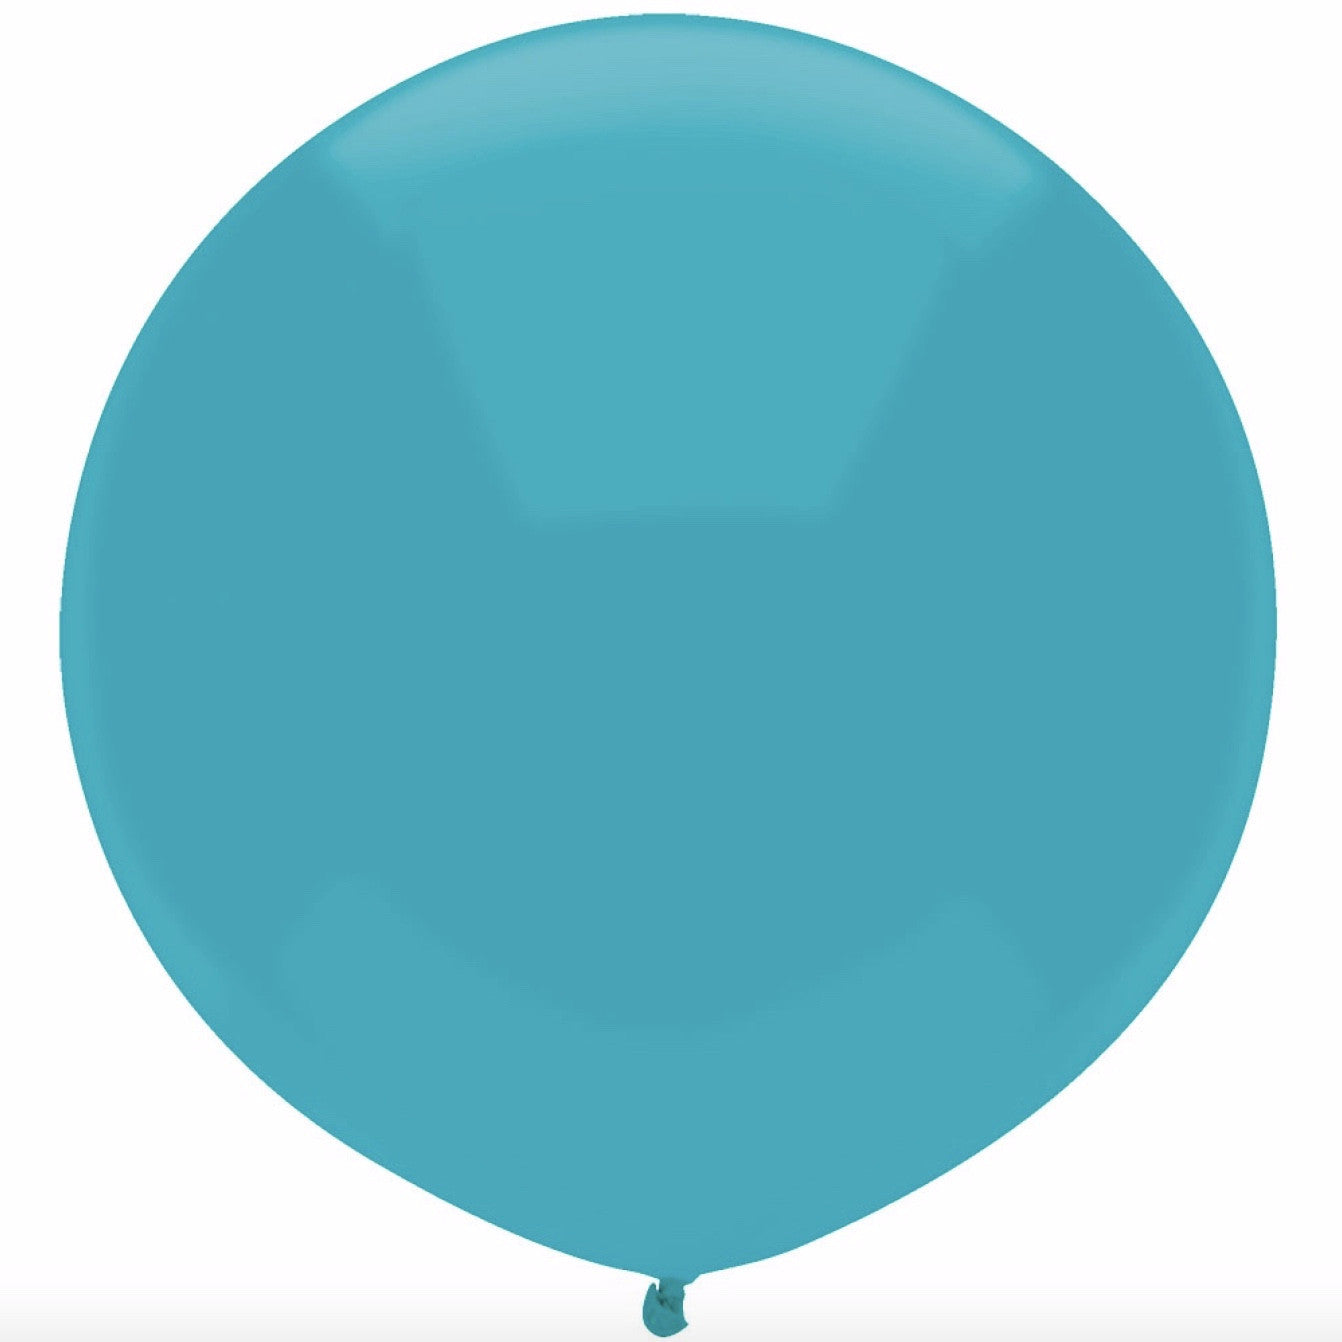 "Round Outdoor Balloon 17""- Island Blue, SE-Surprize Enterprize, Putti Fine Furnishings"